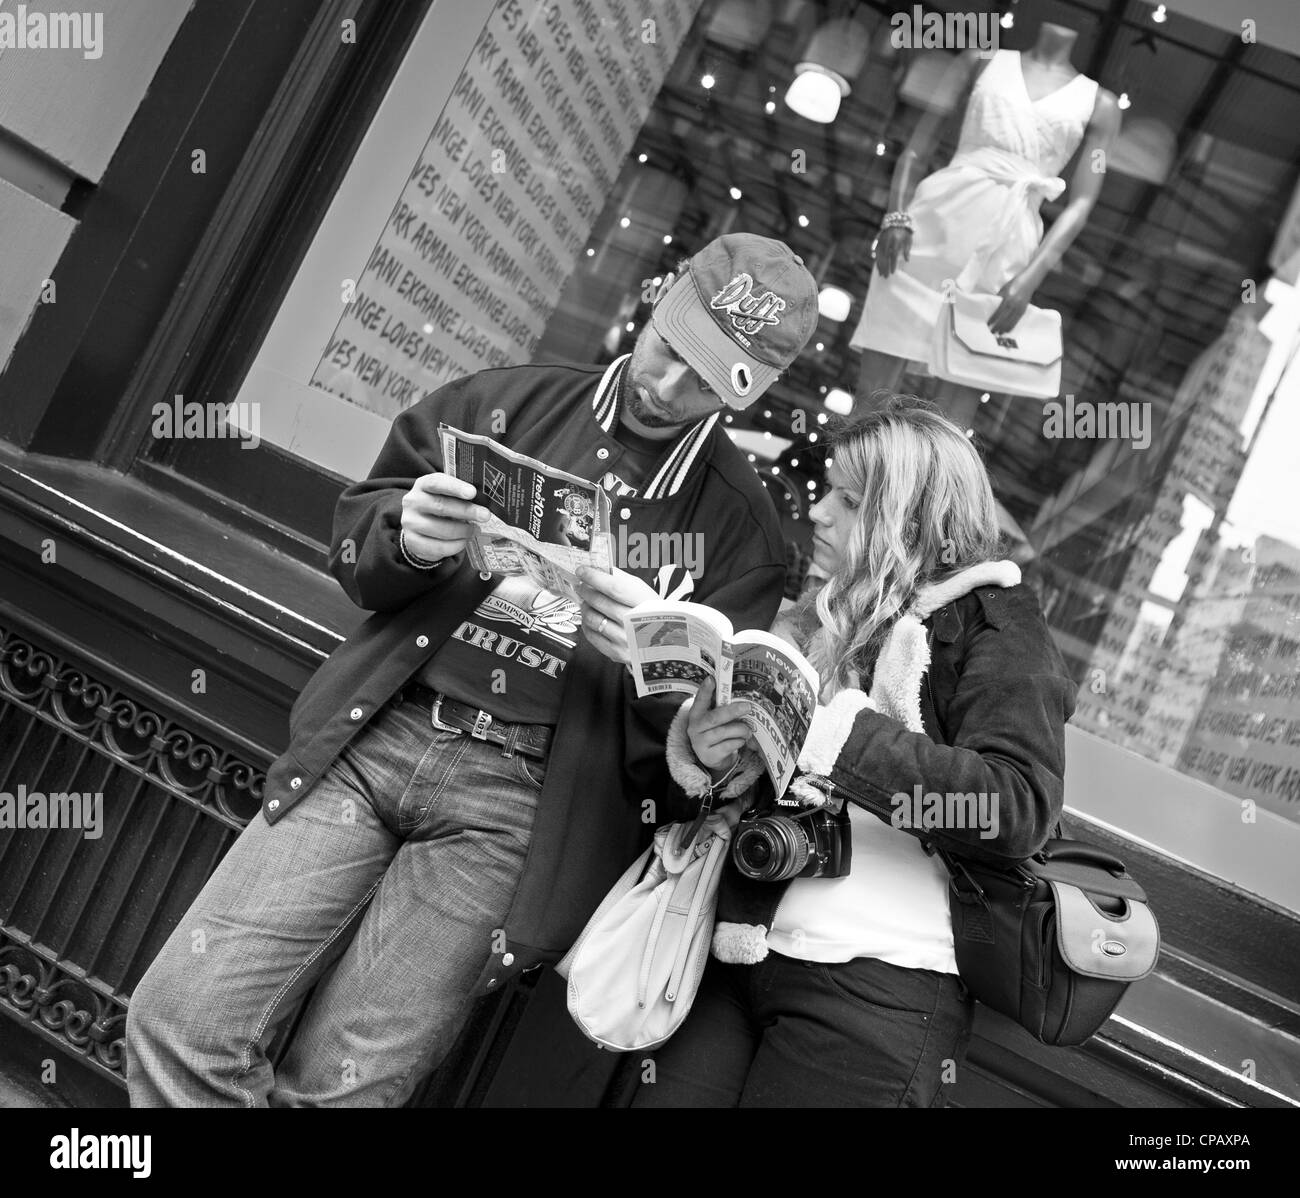 A couple of tourists in New York City try to decide what to do next. - Stock Image